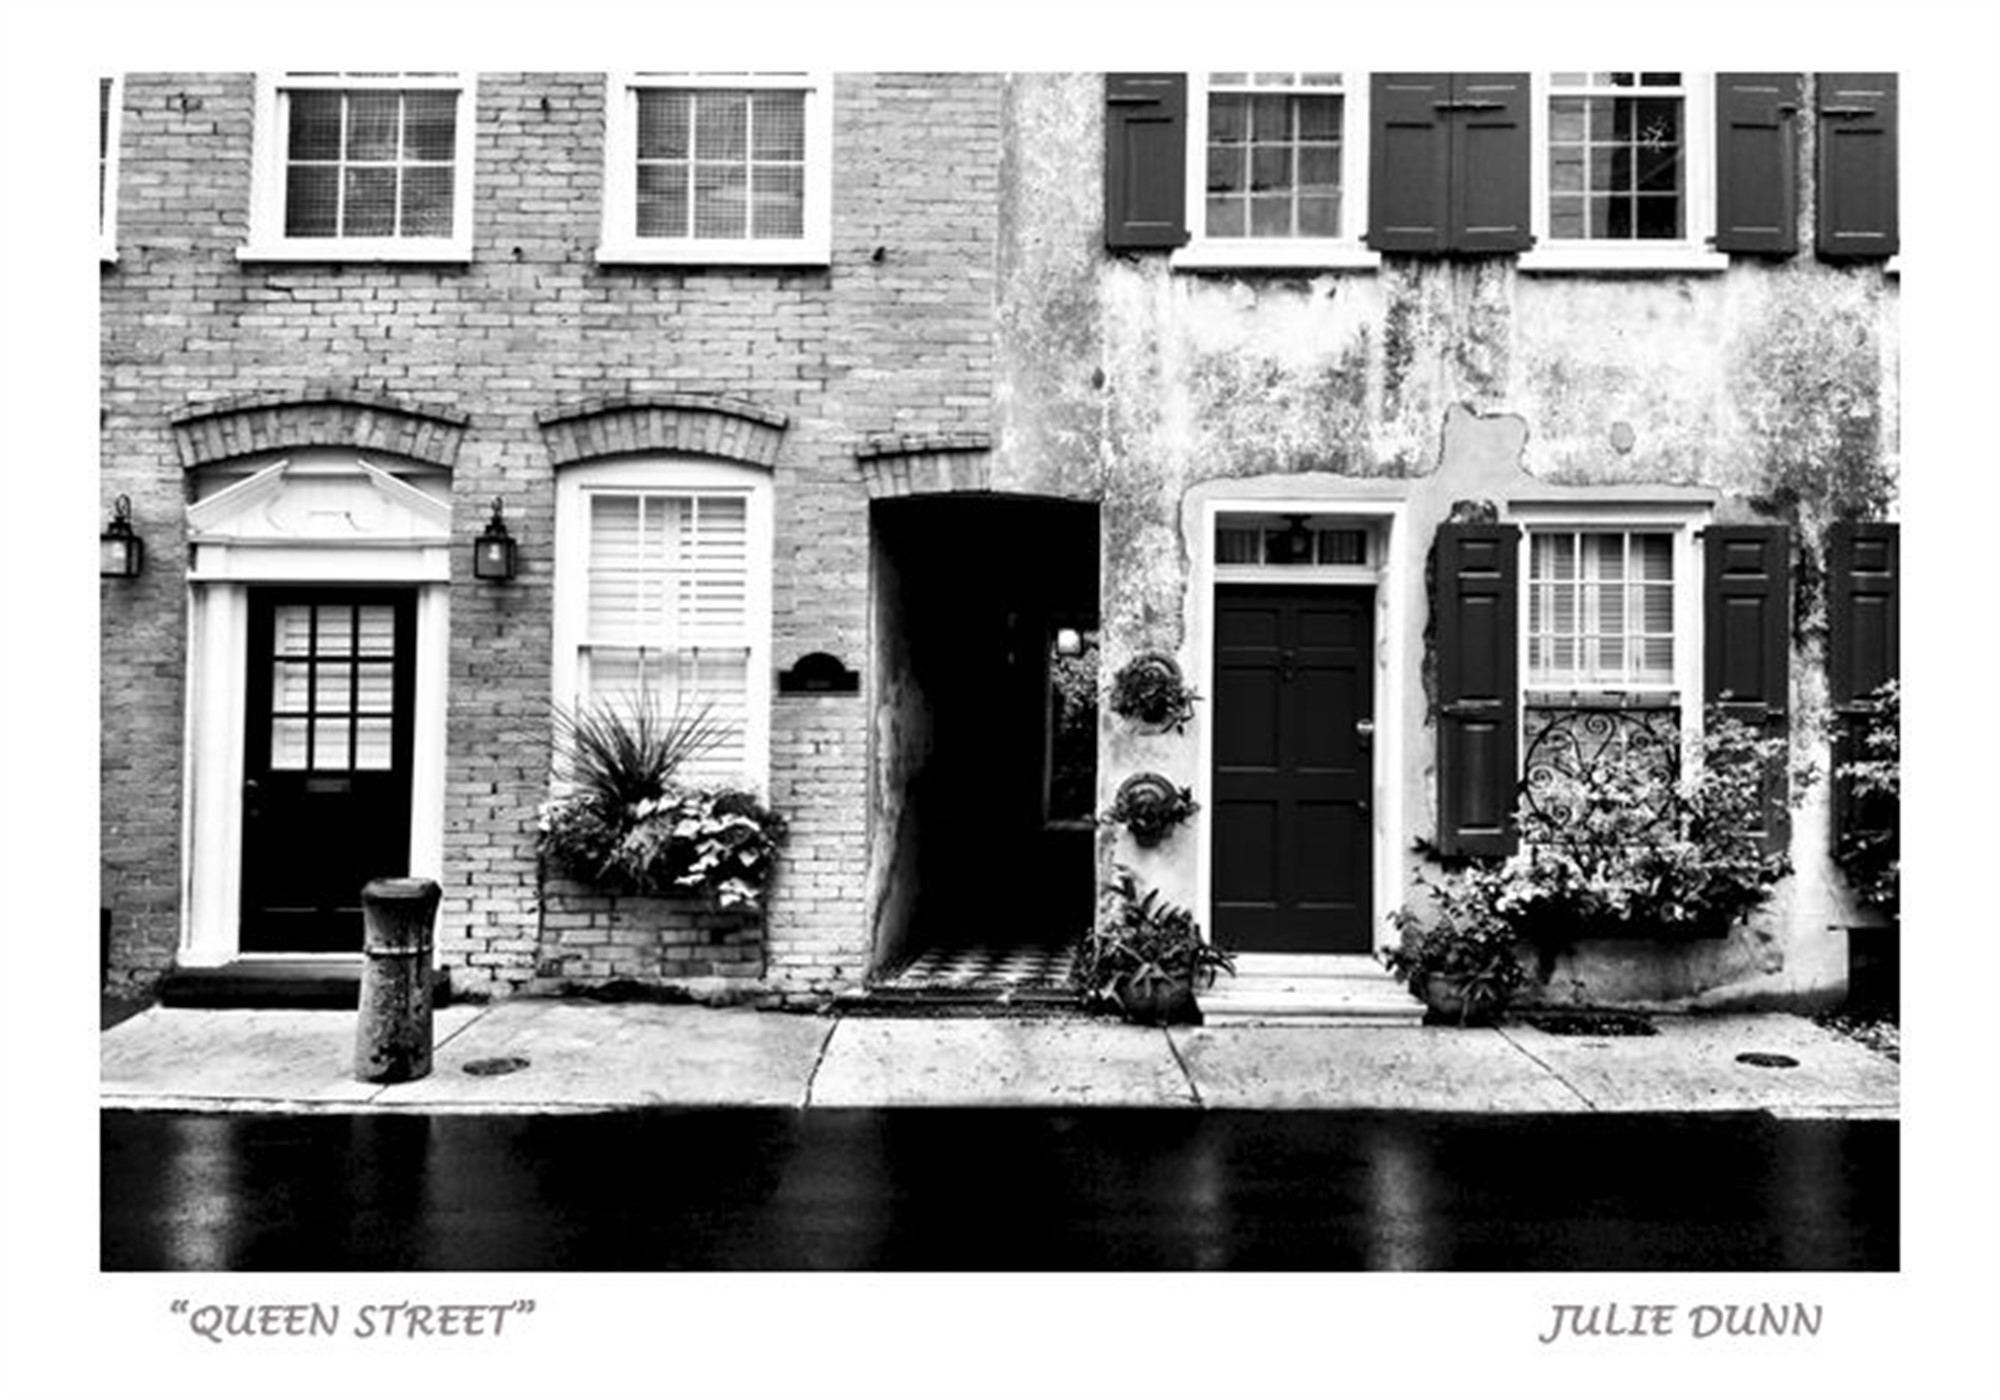 Queen Street by Julie Dunn